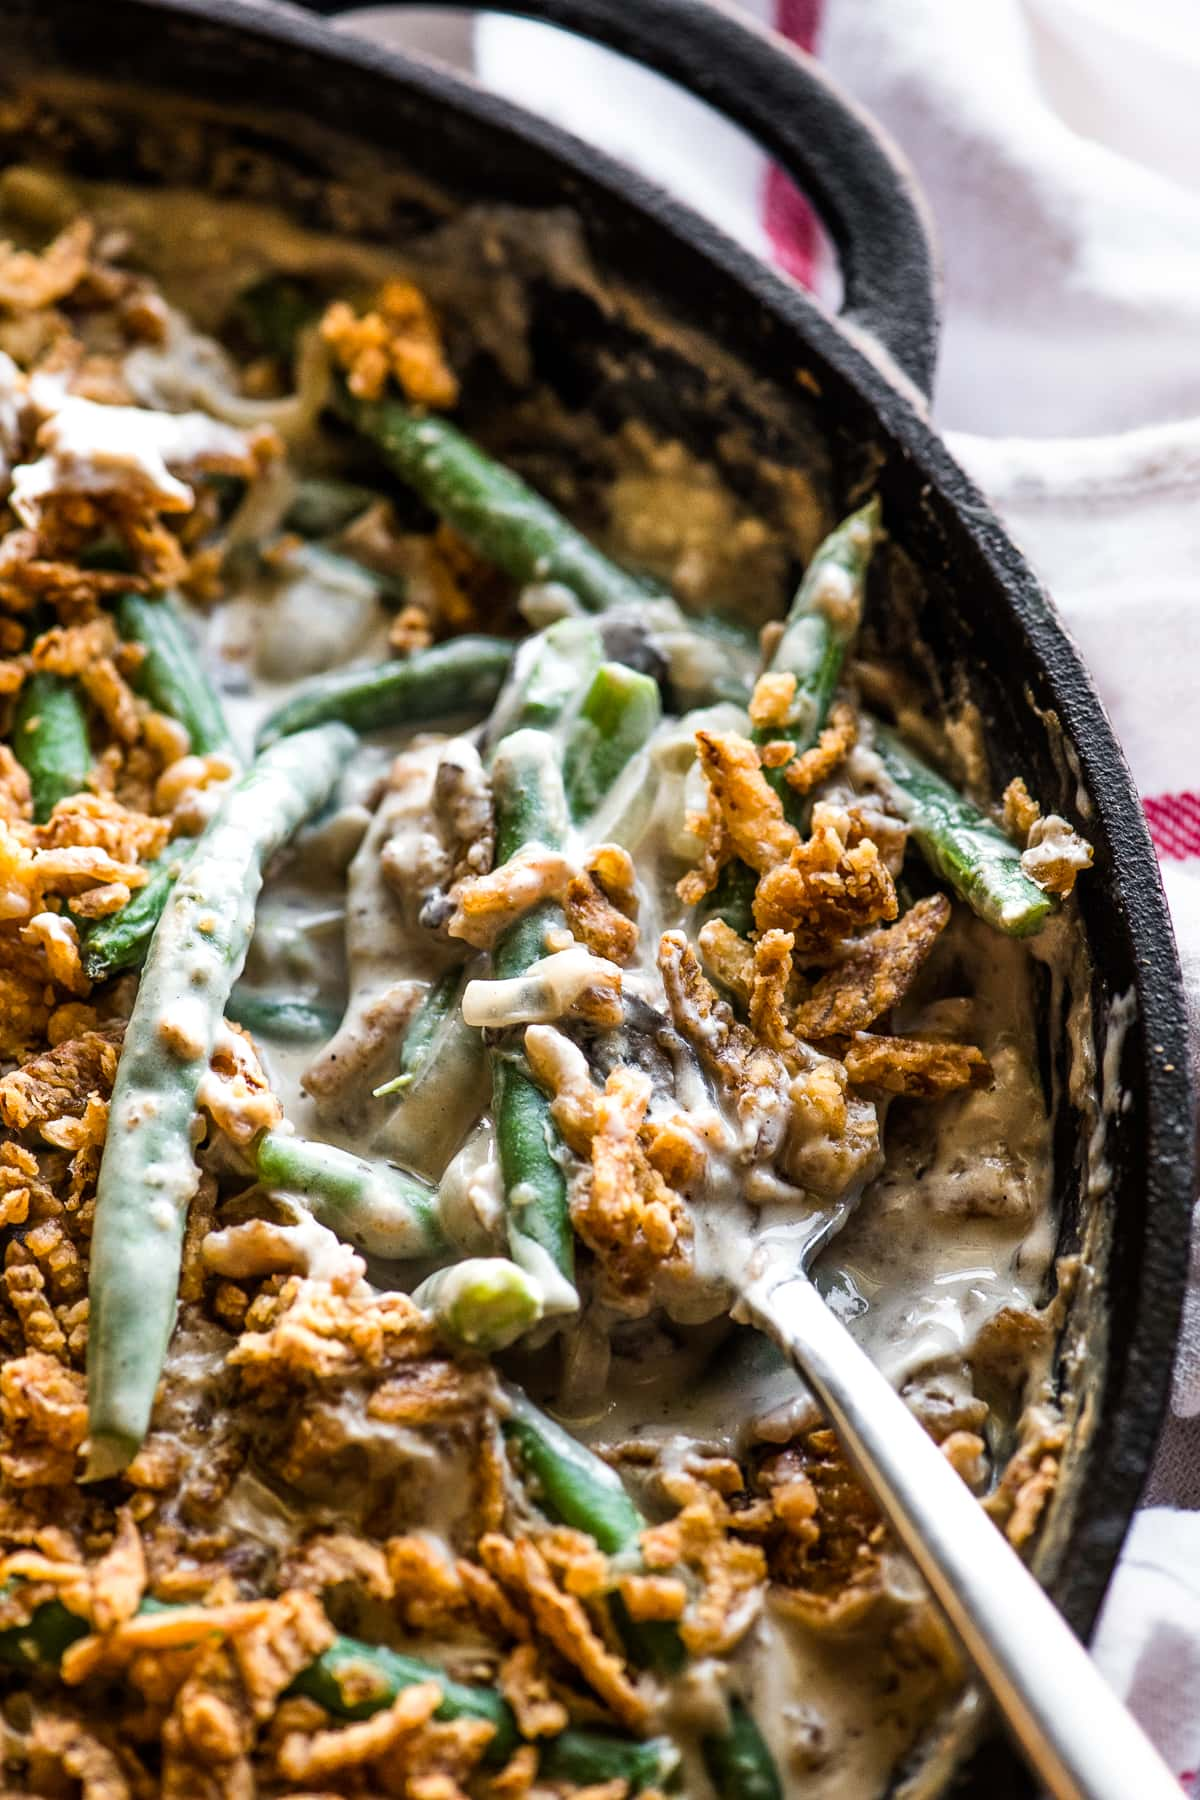 Creamy green bean casserole made from scratch.